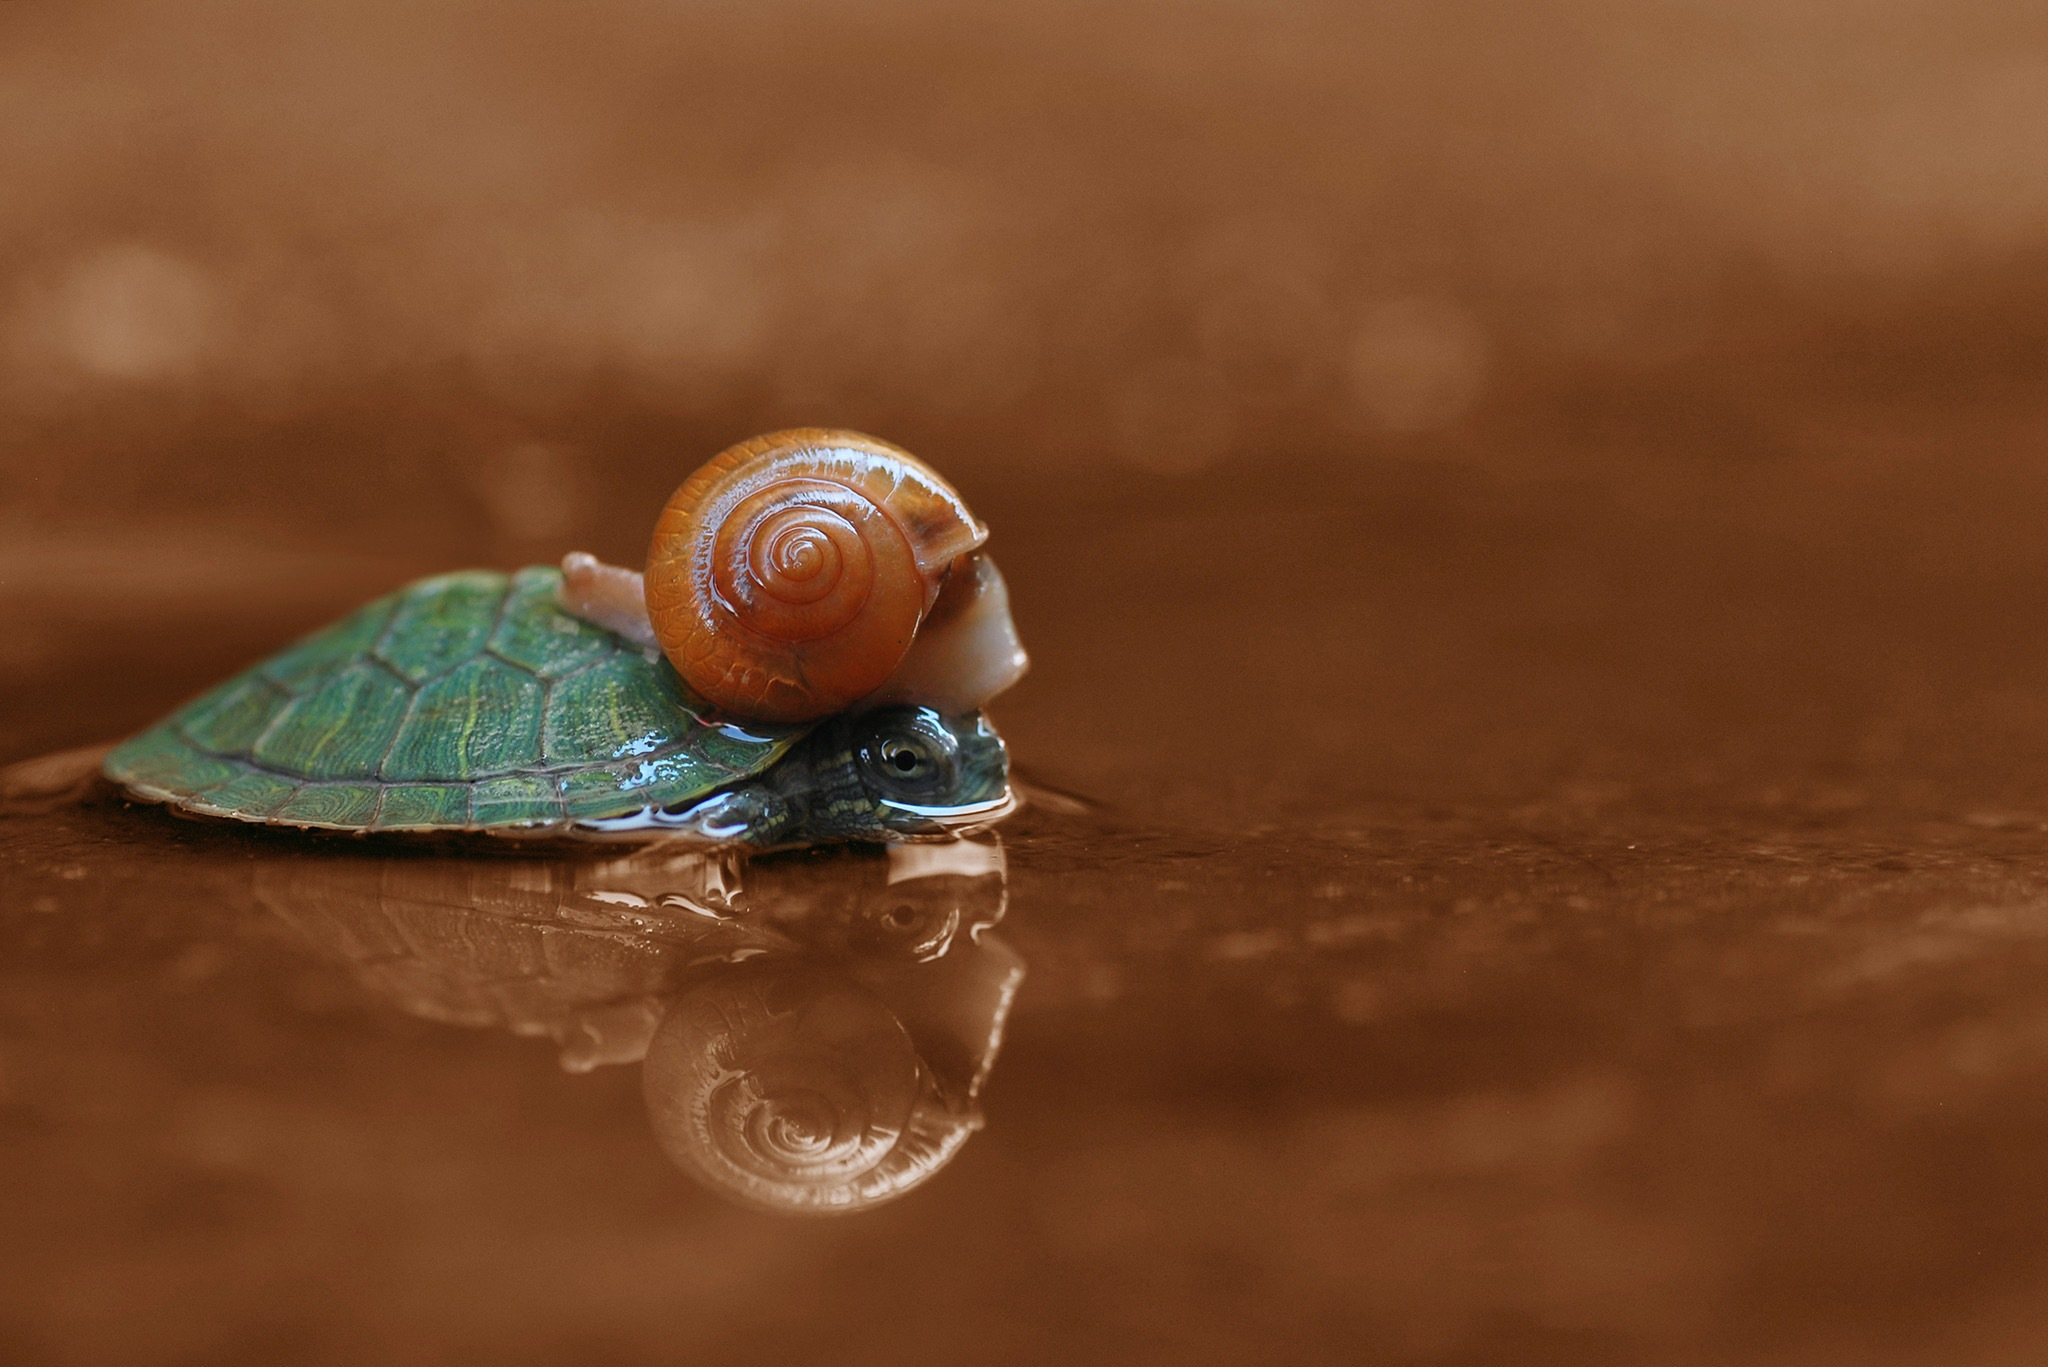 Snail End Turtle by ujangwahyudin